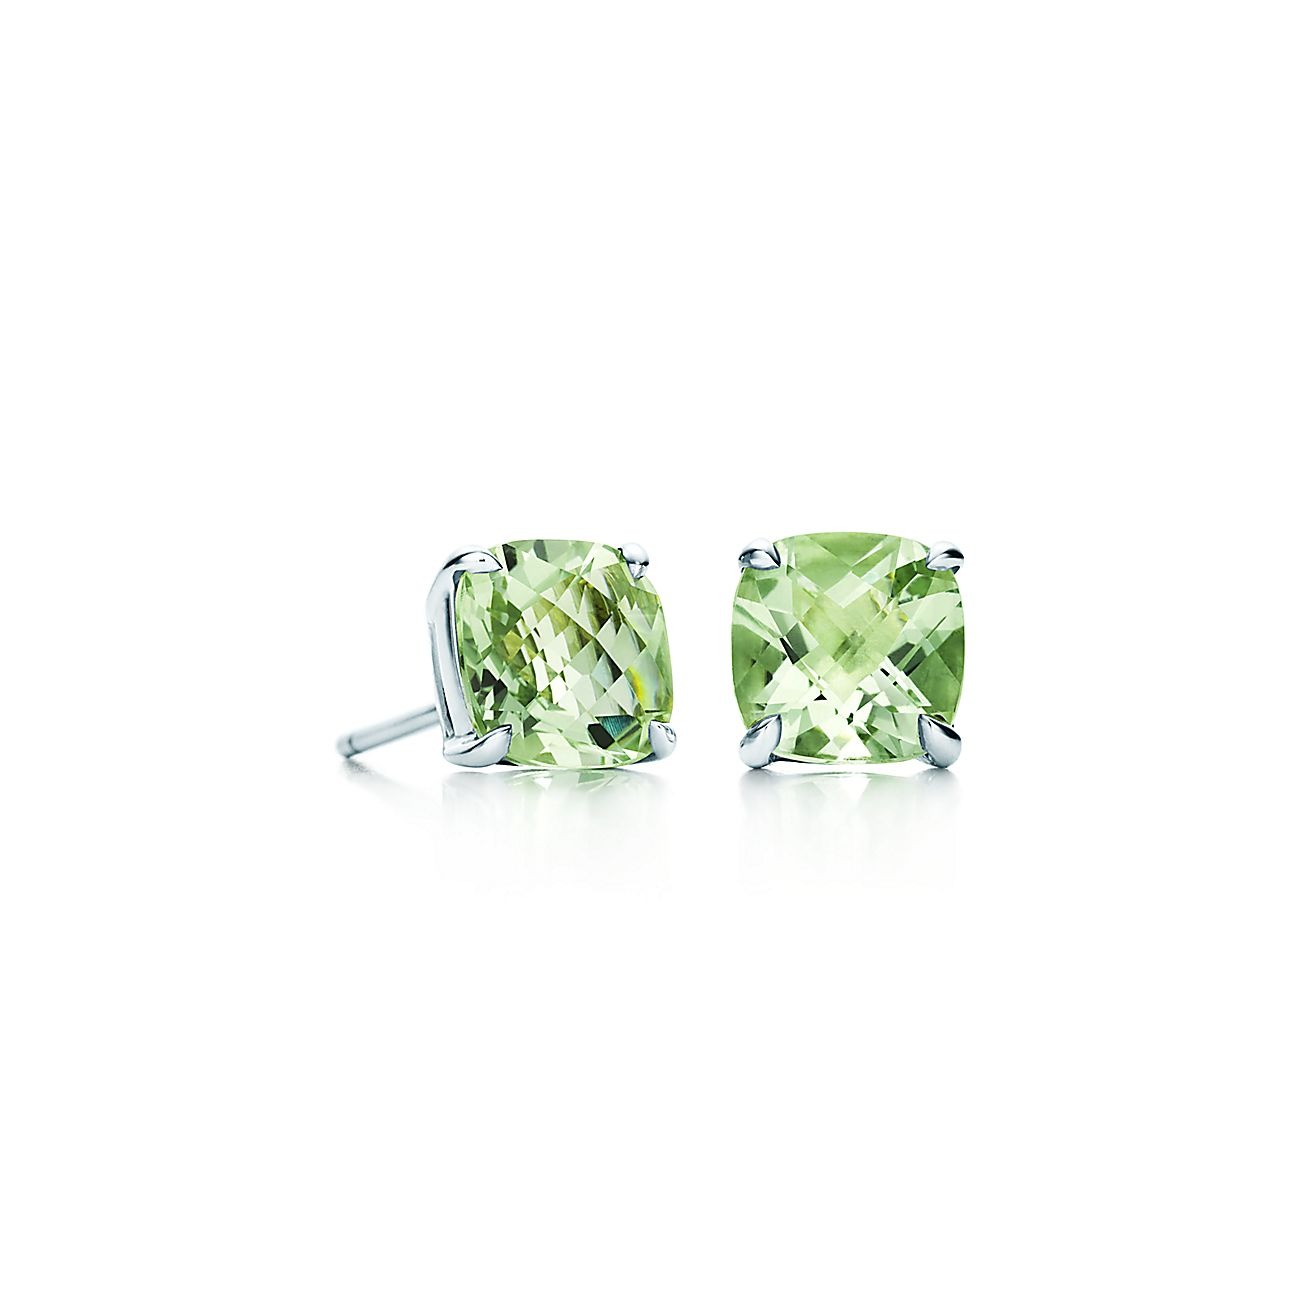 Tiffany Sparklers:Green Quartz Earrings